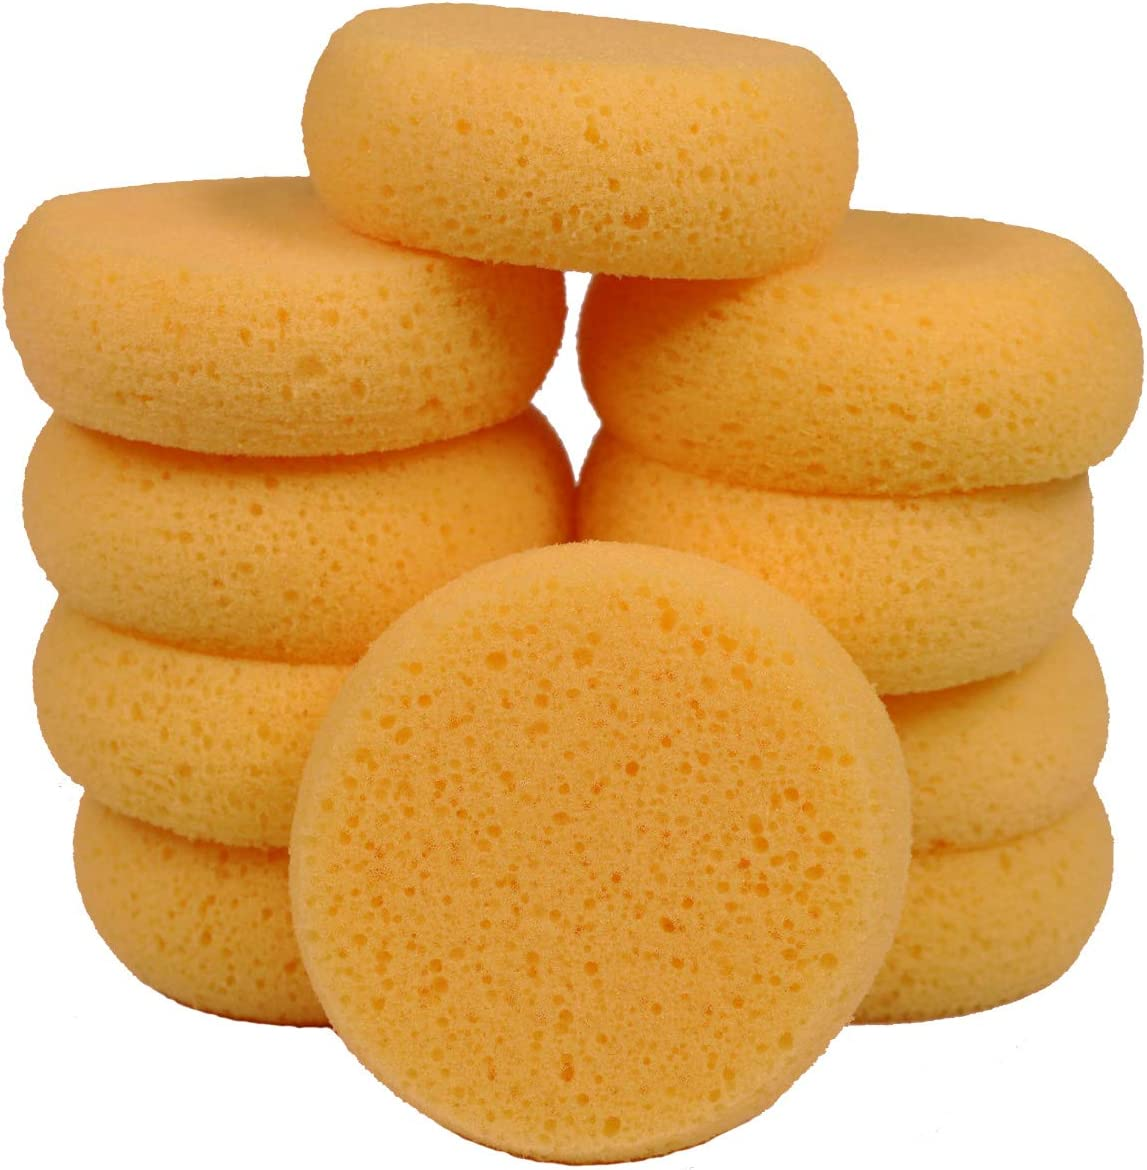 Value Pack of 7 Sponges Crafts Ceramics Pottery and More Creative Hobbies Synthetic and Natural Silk Sponges for Painting